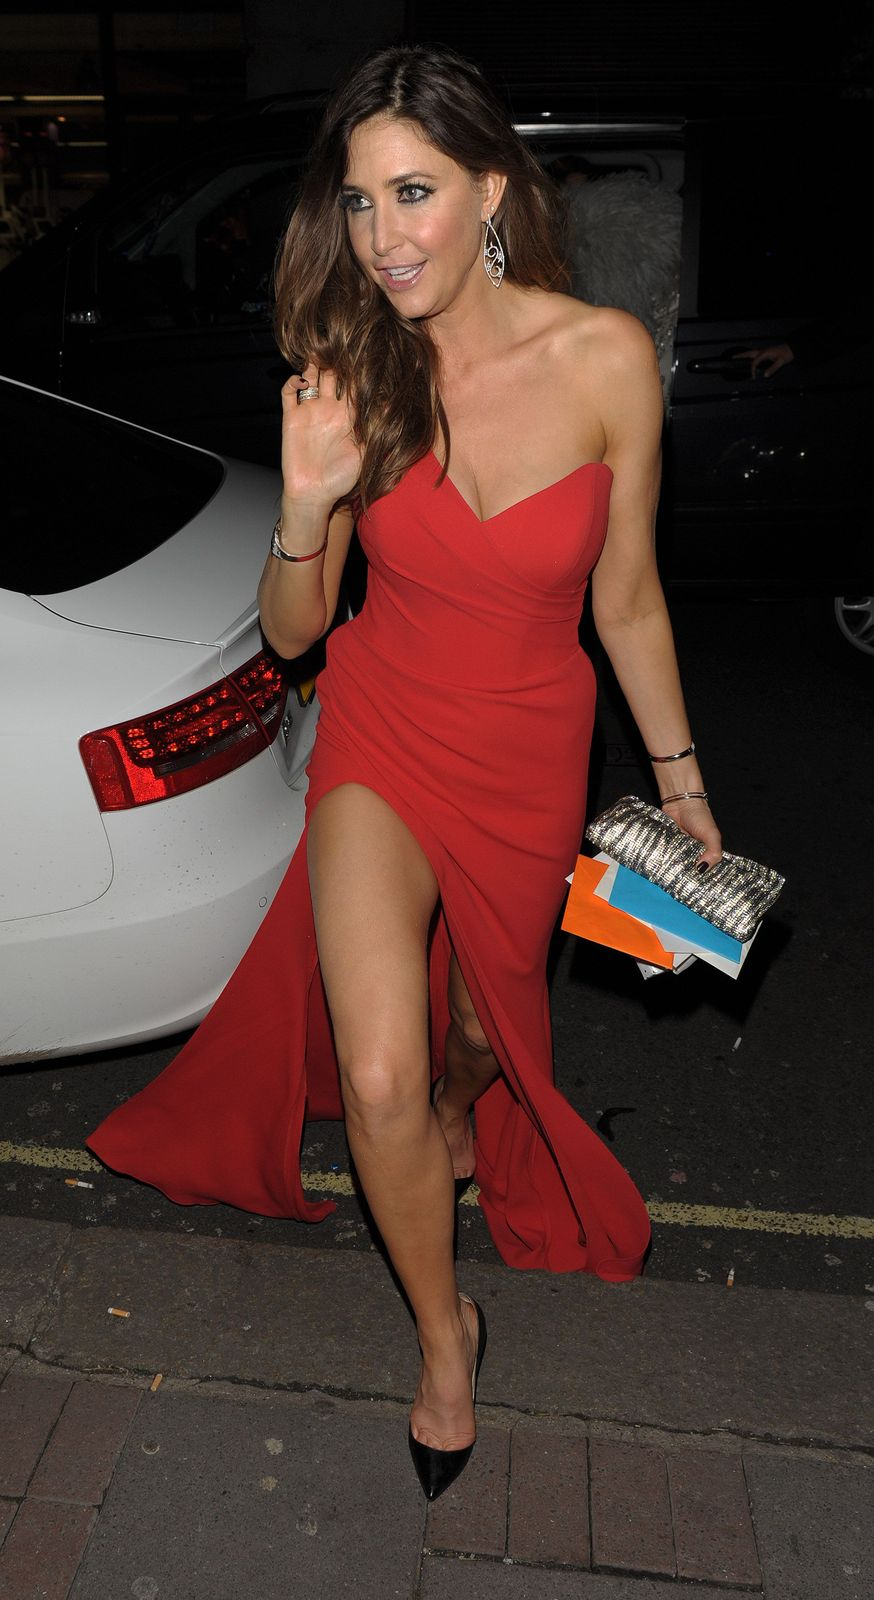 quotlisa snowdonquot luks fabulously leggy in red outfits